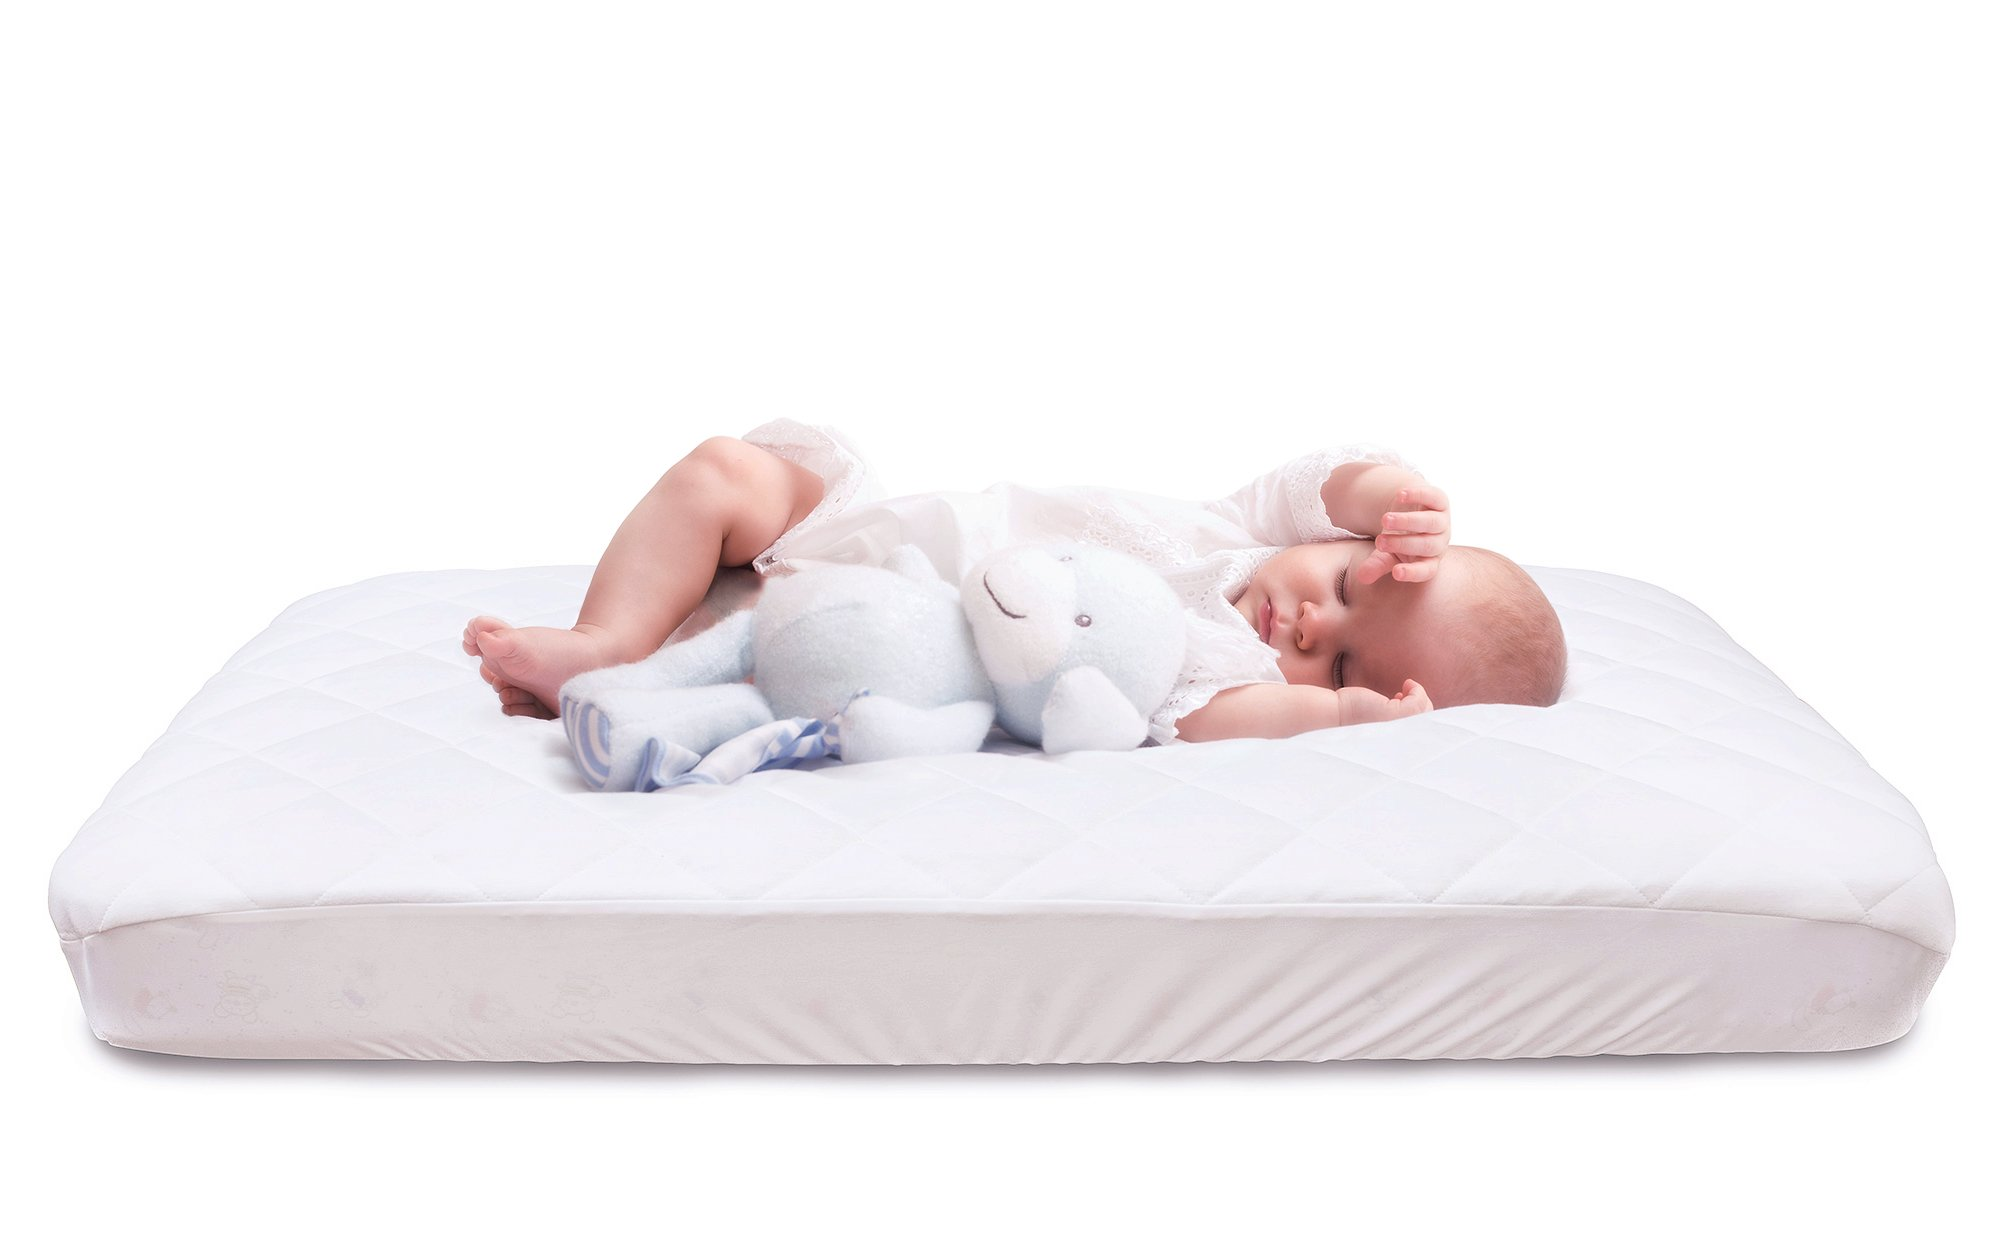 Spring Sale 40% Off - Quilted and Fitted Waterproof Crib Mattress Pad & Cover Made of Silky Smooth Bamboo Fiber Rayon Perfect for Baby and Toddler Use by Natural Fabrix